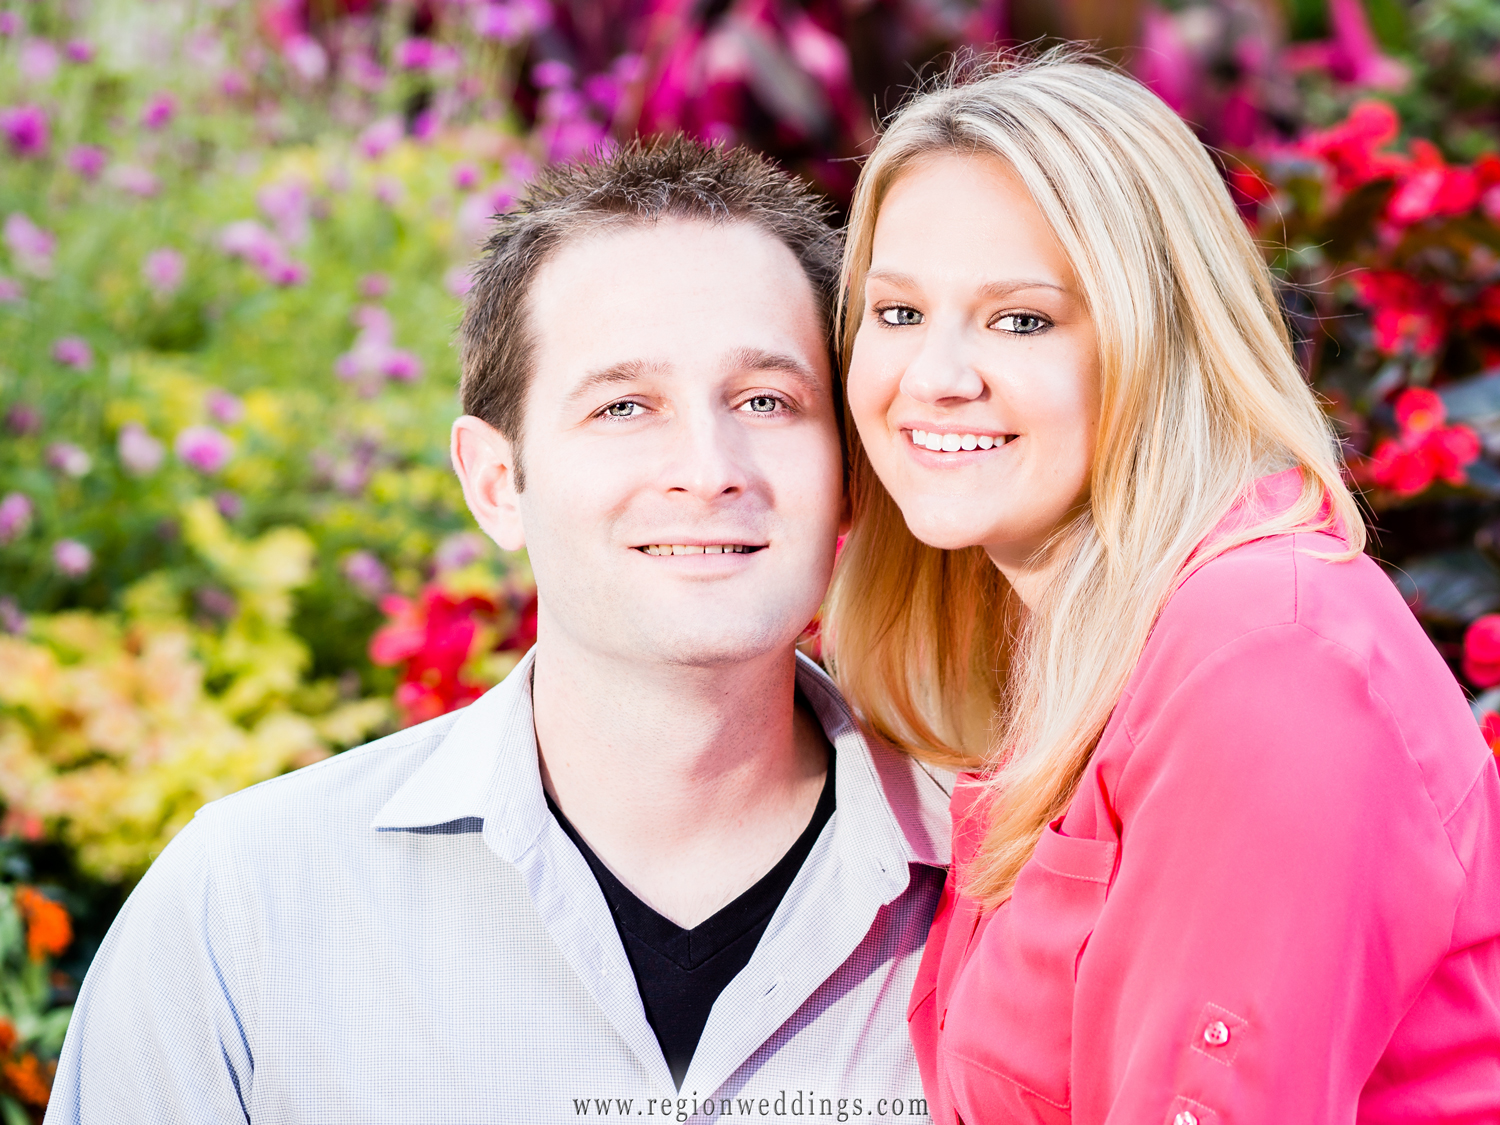 A loving smiles at the camera with beautiful red and pink flowers in the background.